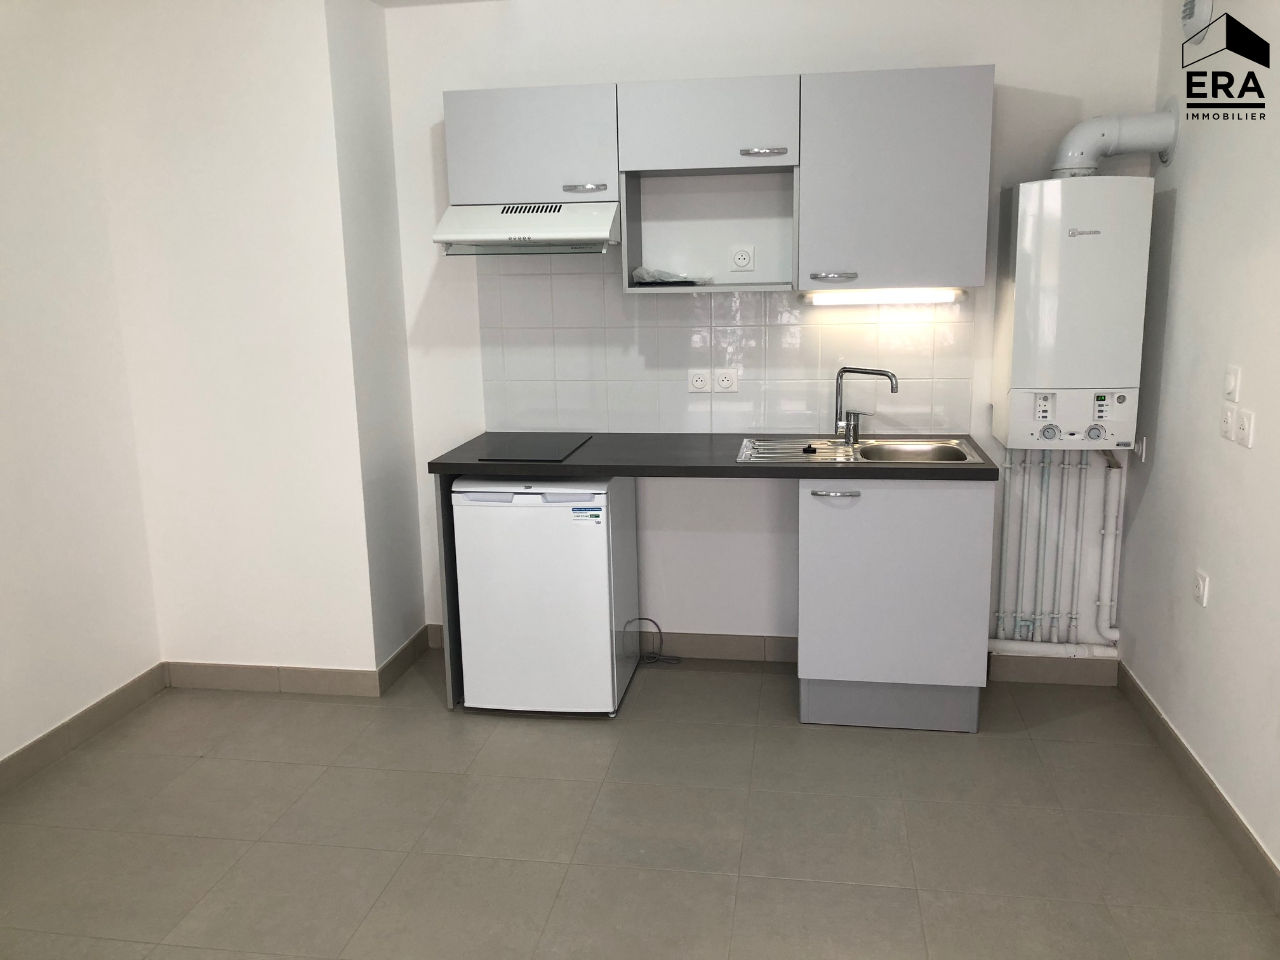 Appartements Neuf 2020/2021 T2 A LOUER